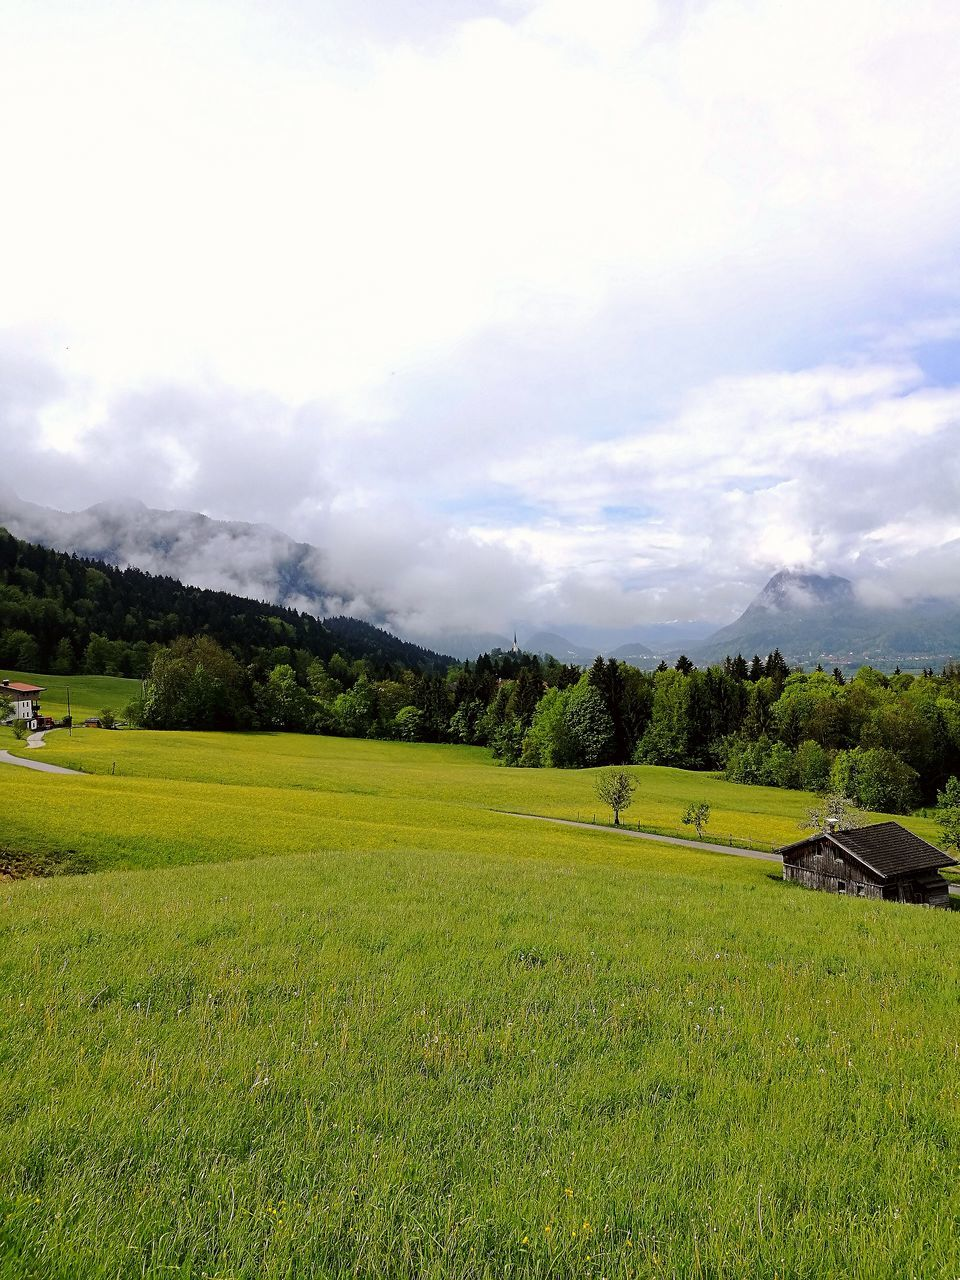 grass, nature, landscape, no people, tranquil scene, tranquility, beauty in nature, field, scenics, green color, sky, day, cloud - sky, tree, mountain, outdoors